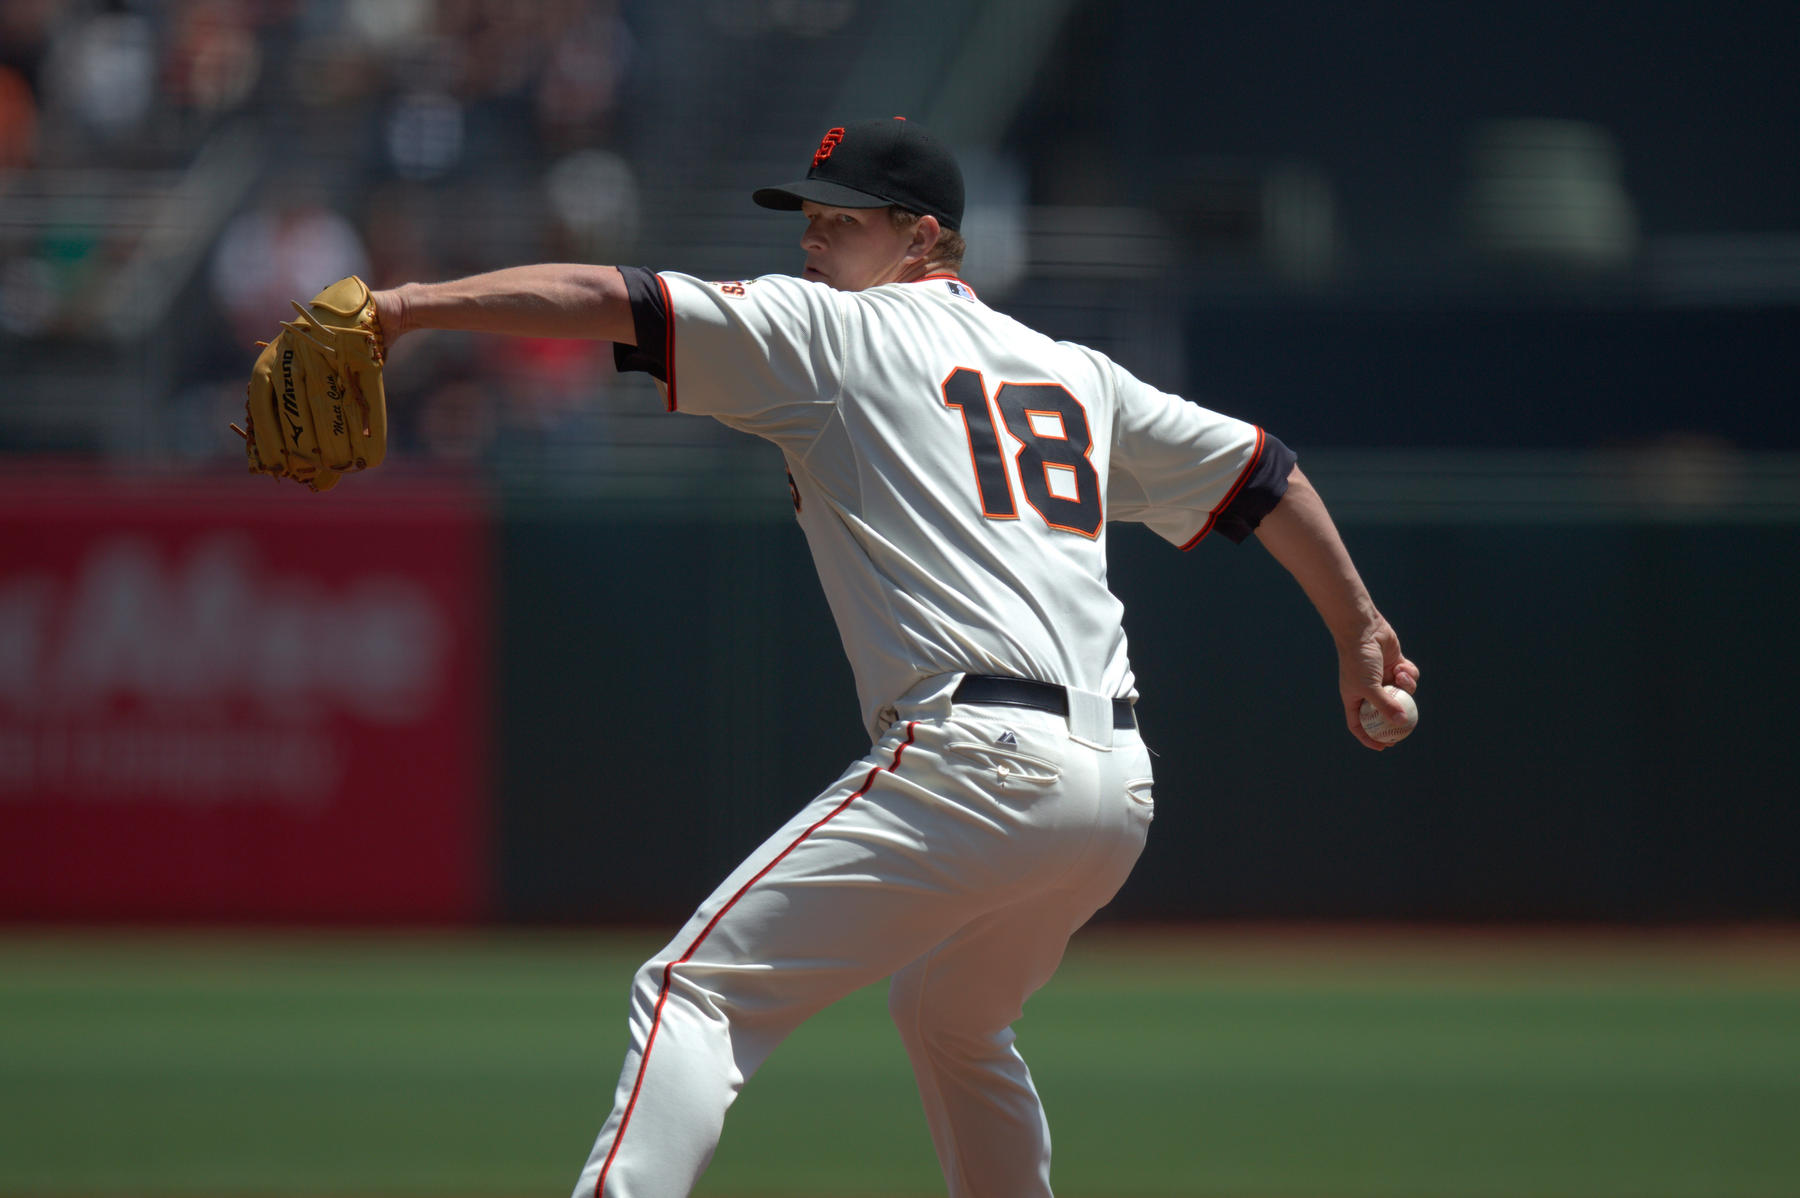 Matt Cain pitching in 2012. - BD8E1786 (Brad Mangin / National Baseball Hall of Fame and Museum)